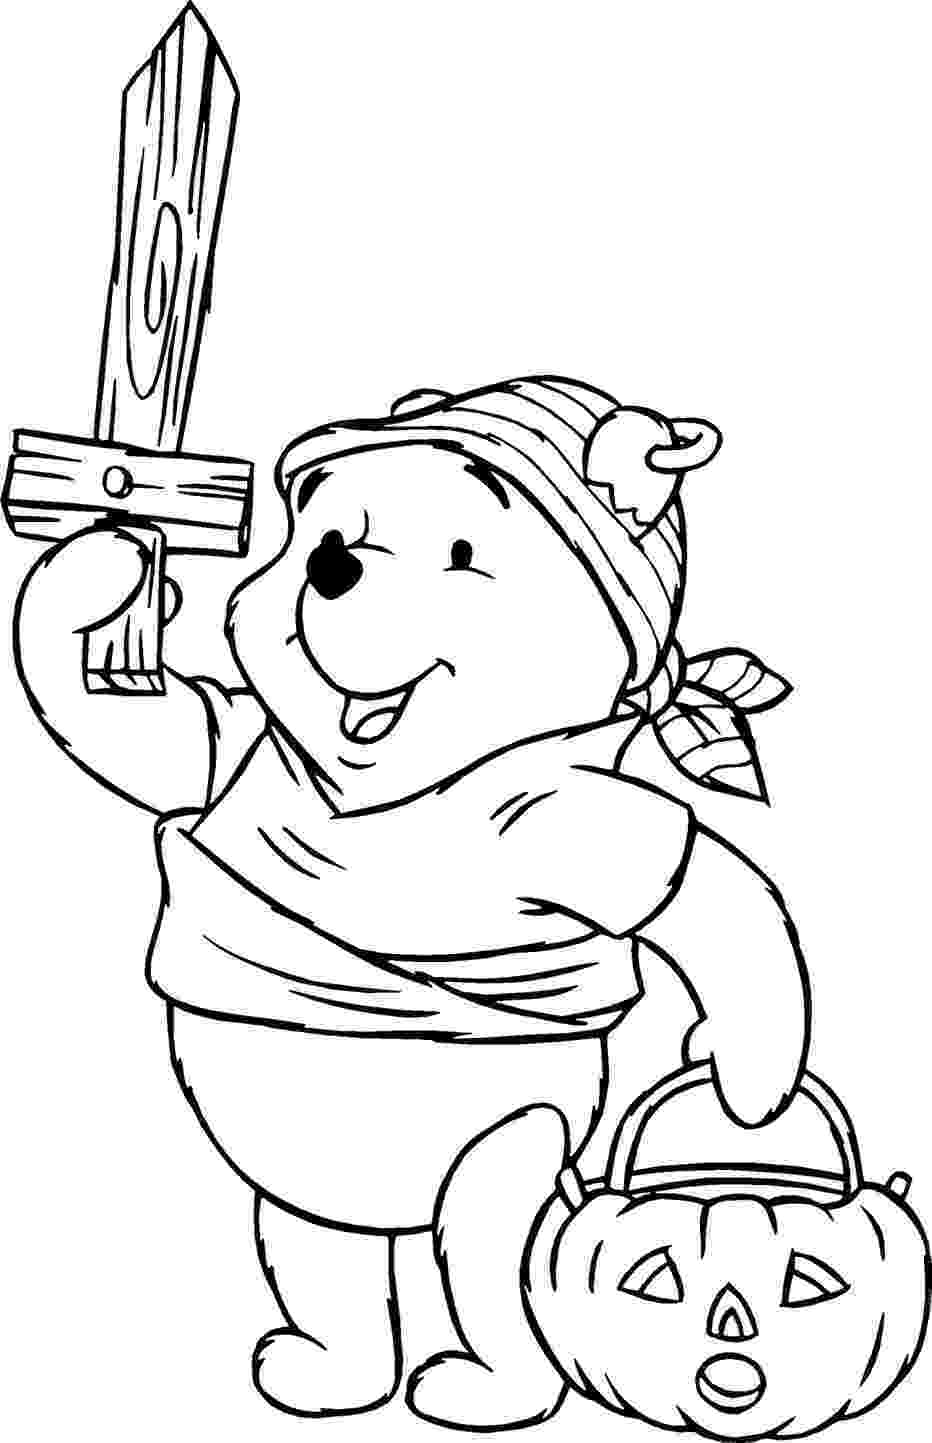 colouring pages for toddlers printable free printable nickelodeon coloring pages for kids printable colouring for pages toddlers